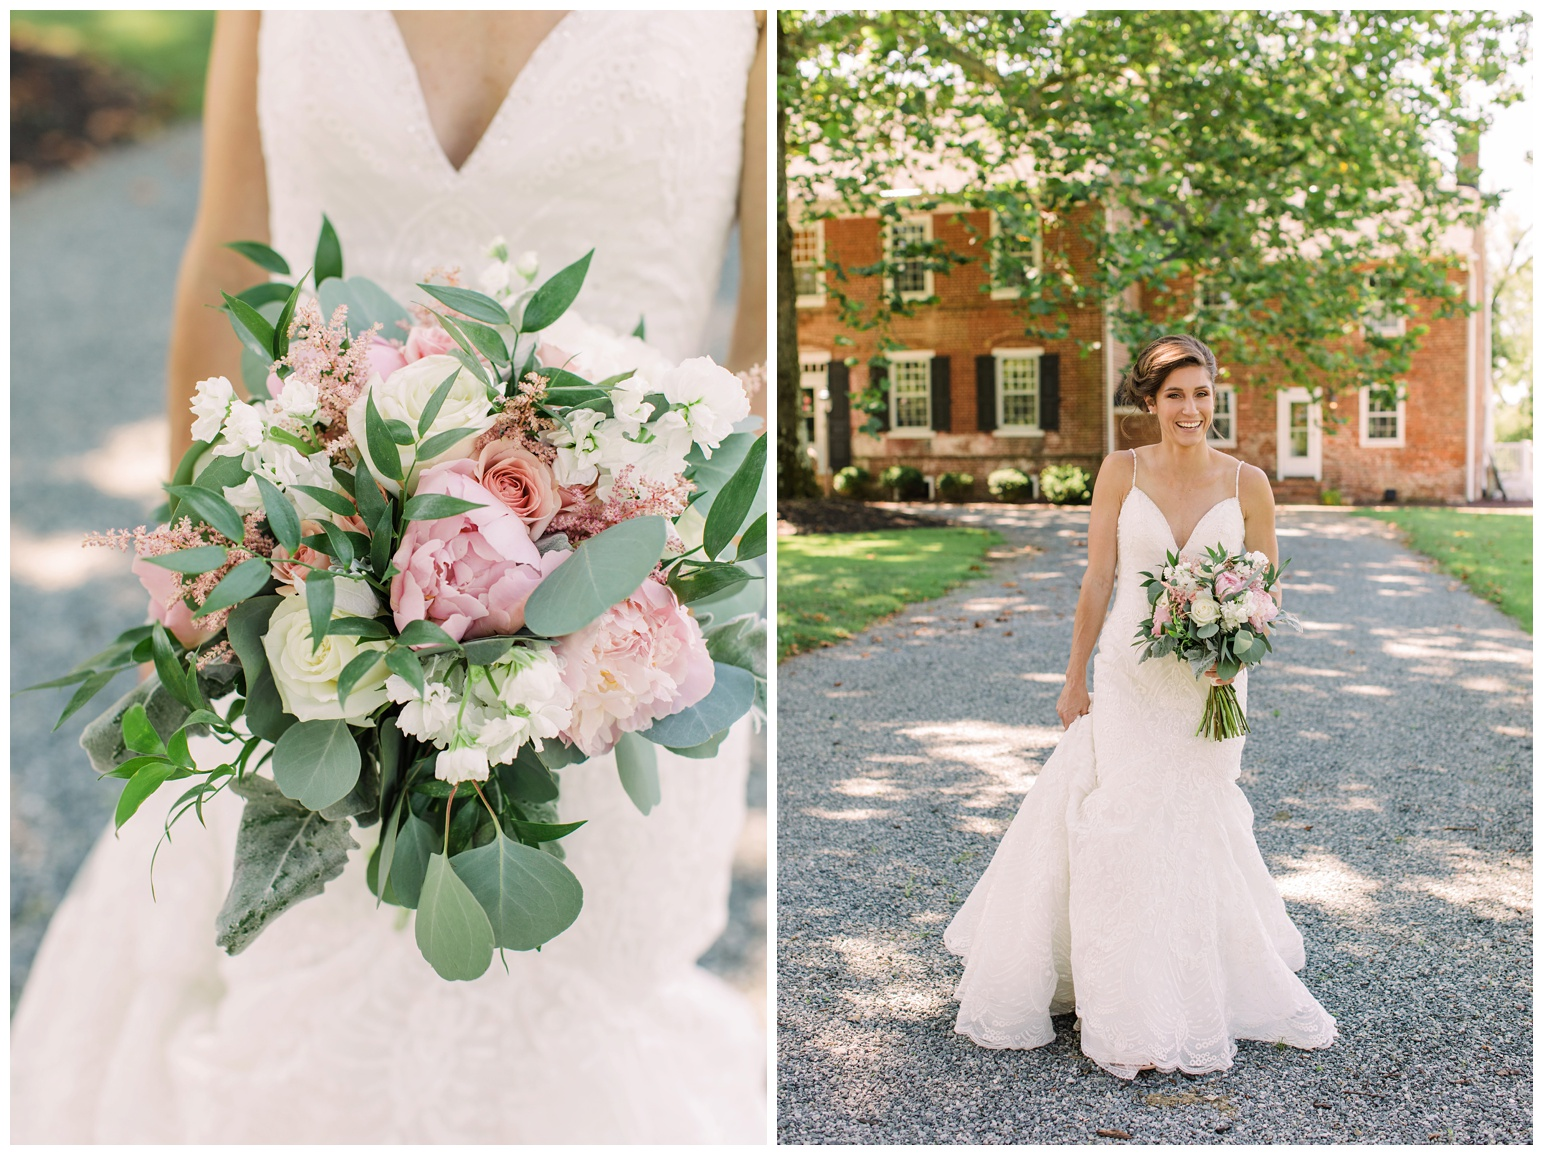 summer wedding at worsell manor - warwick md - now featured on My Eastern Shore Wedding - coastal - sea - nautical - eastern shore - inspired wedding ideas and inspo - photo of bride outdoors in front of brick manor style building